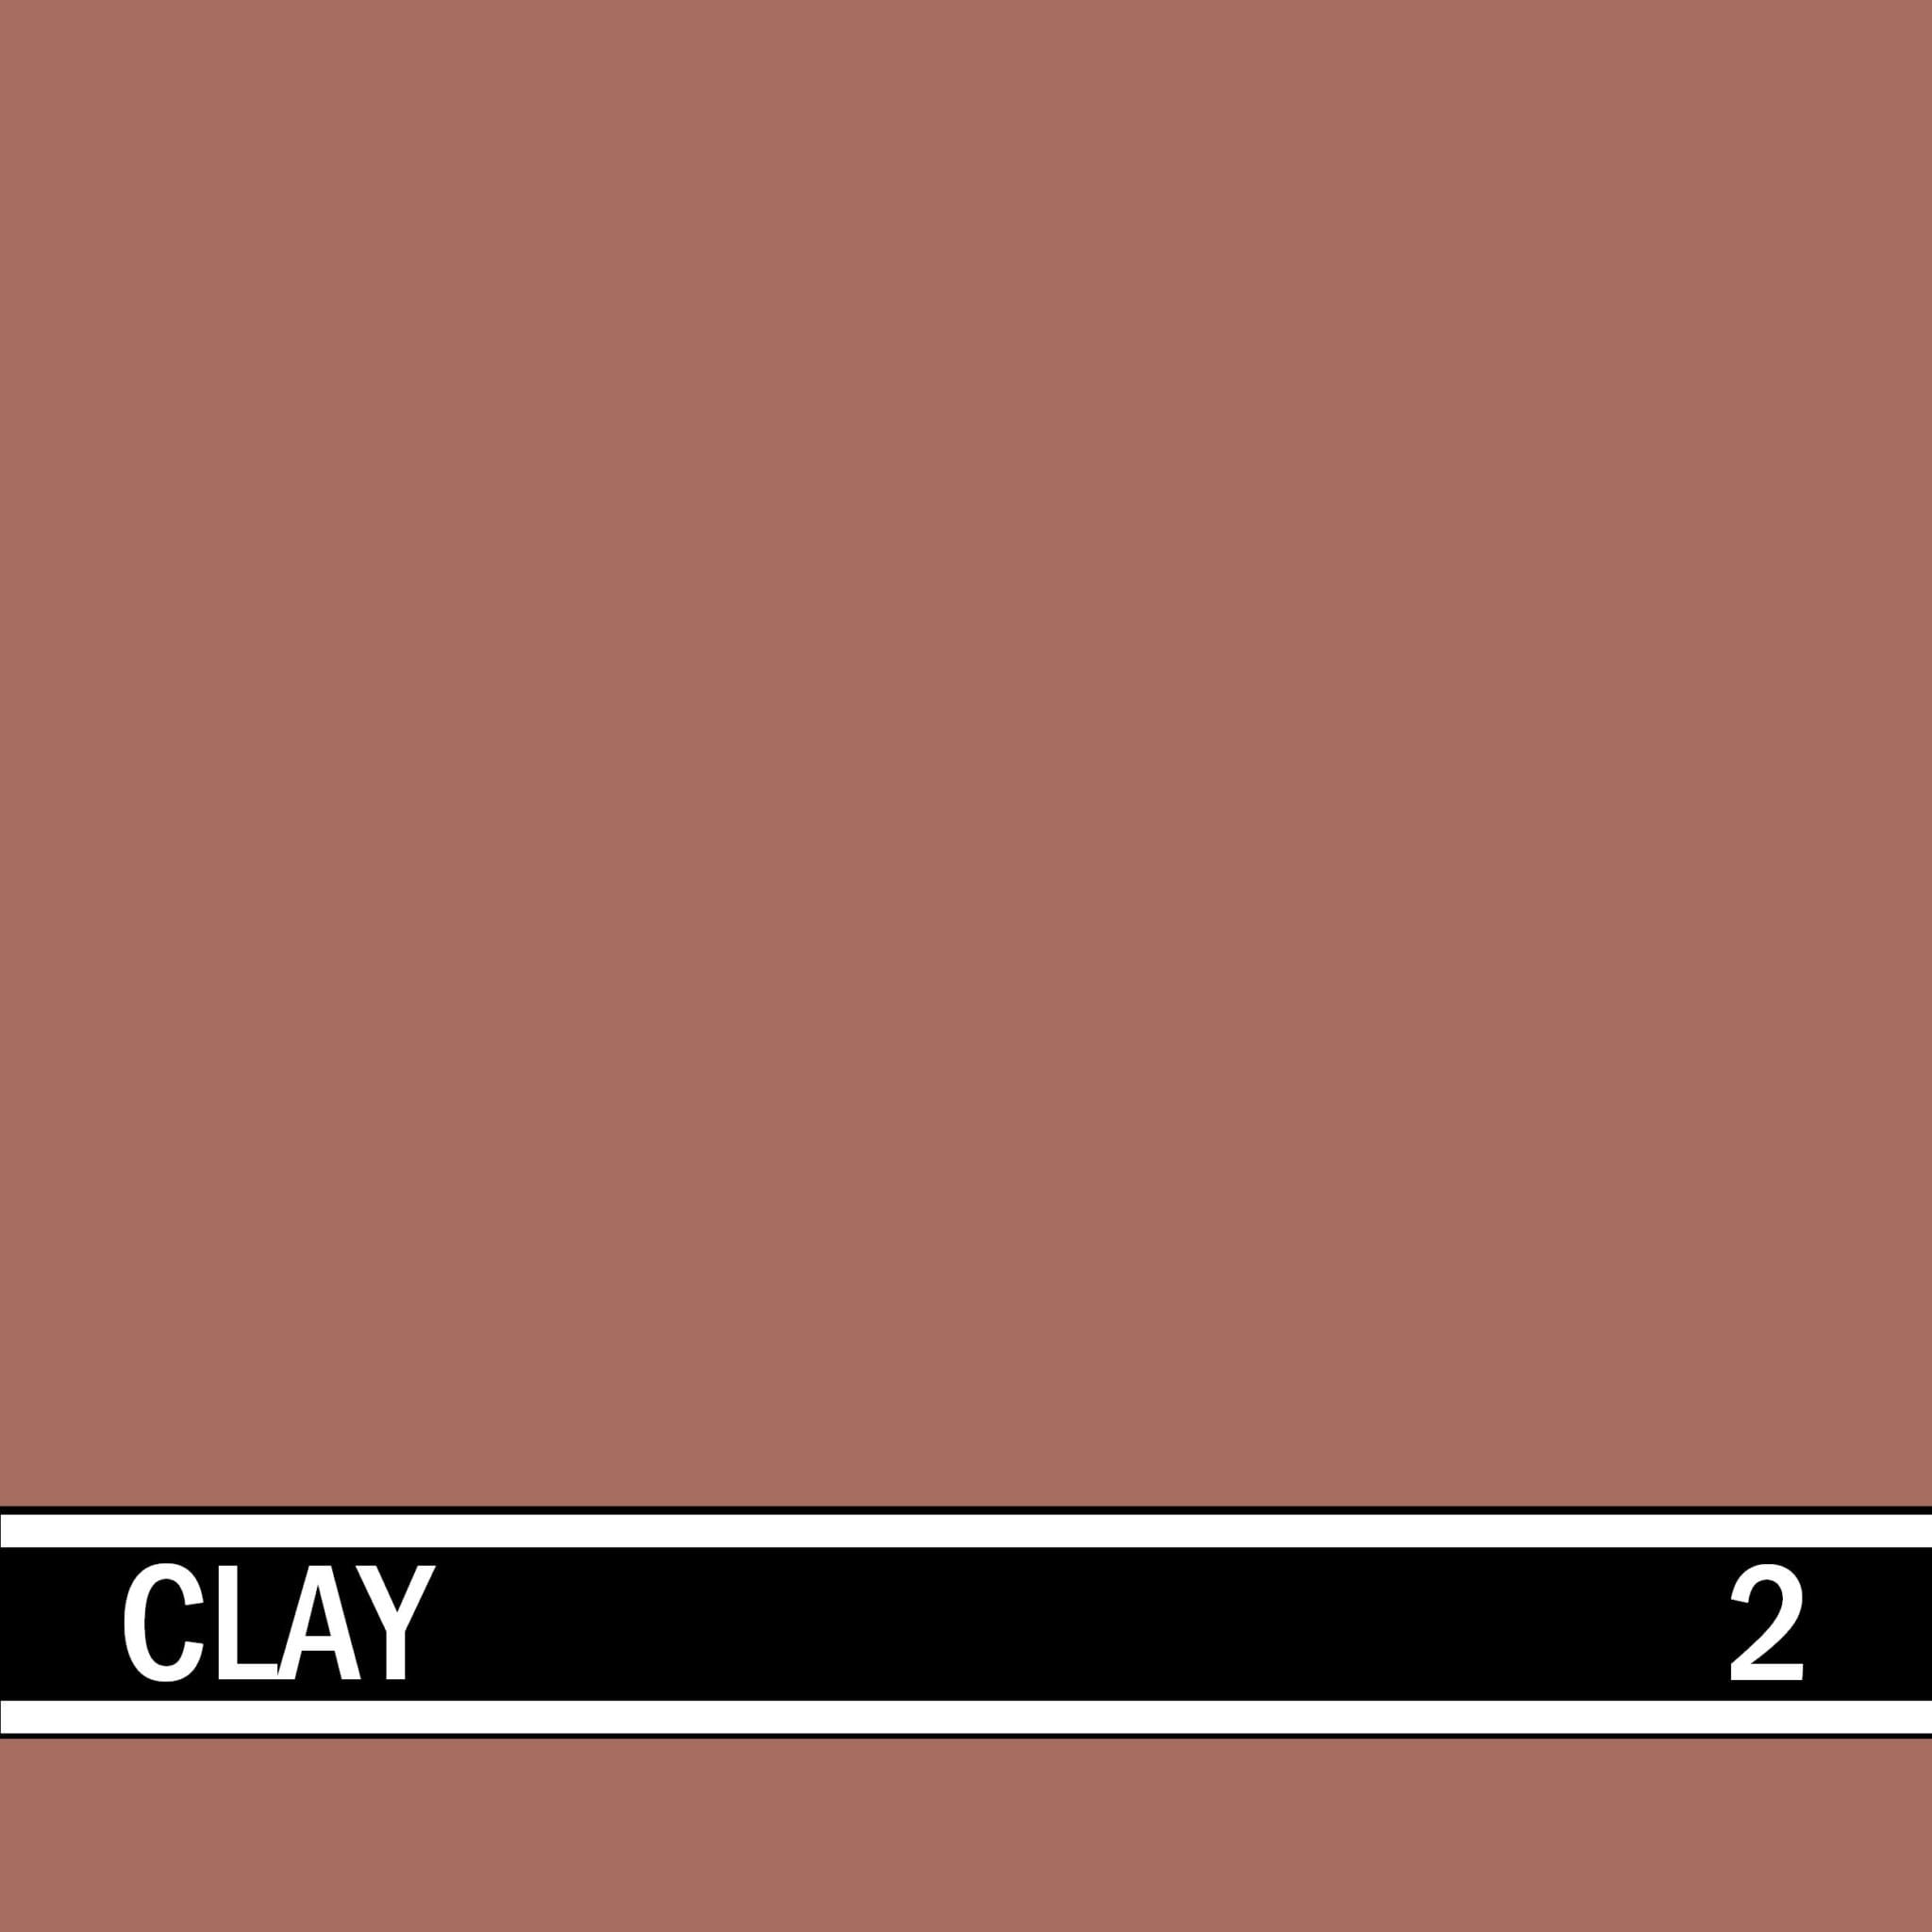 Clay integral concrete color for stamped concrete and decorative colored concrete